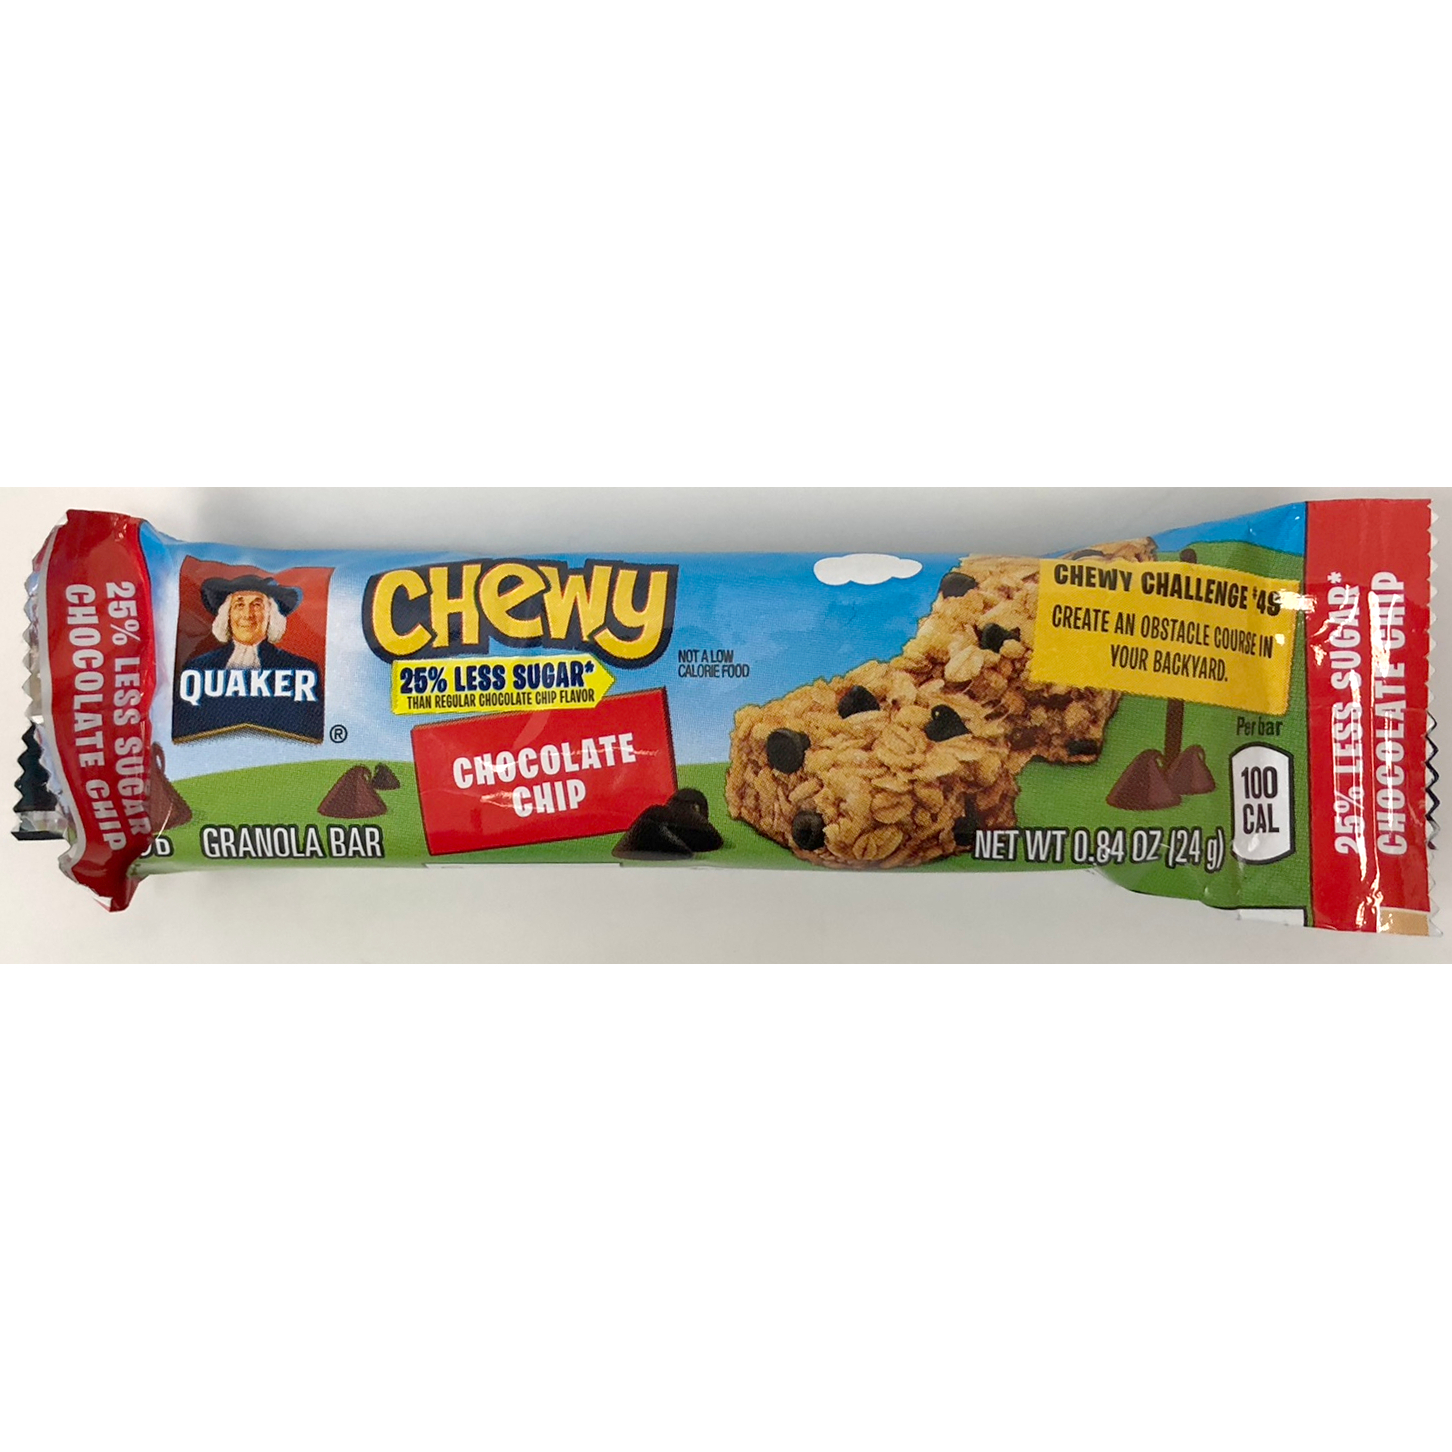 Wholesale Quaker Chewy Granola Bar Chocolate Chip Low